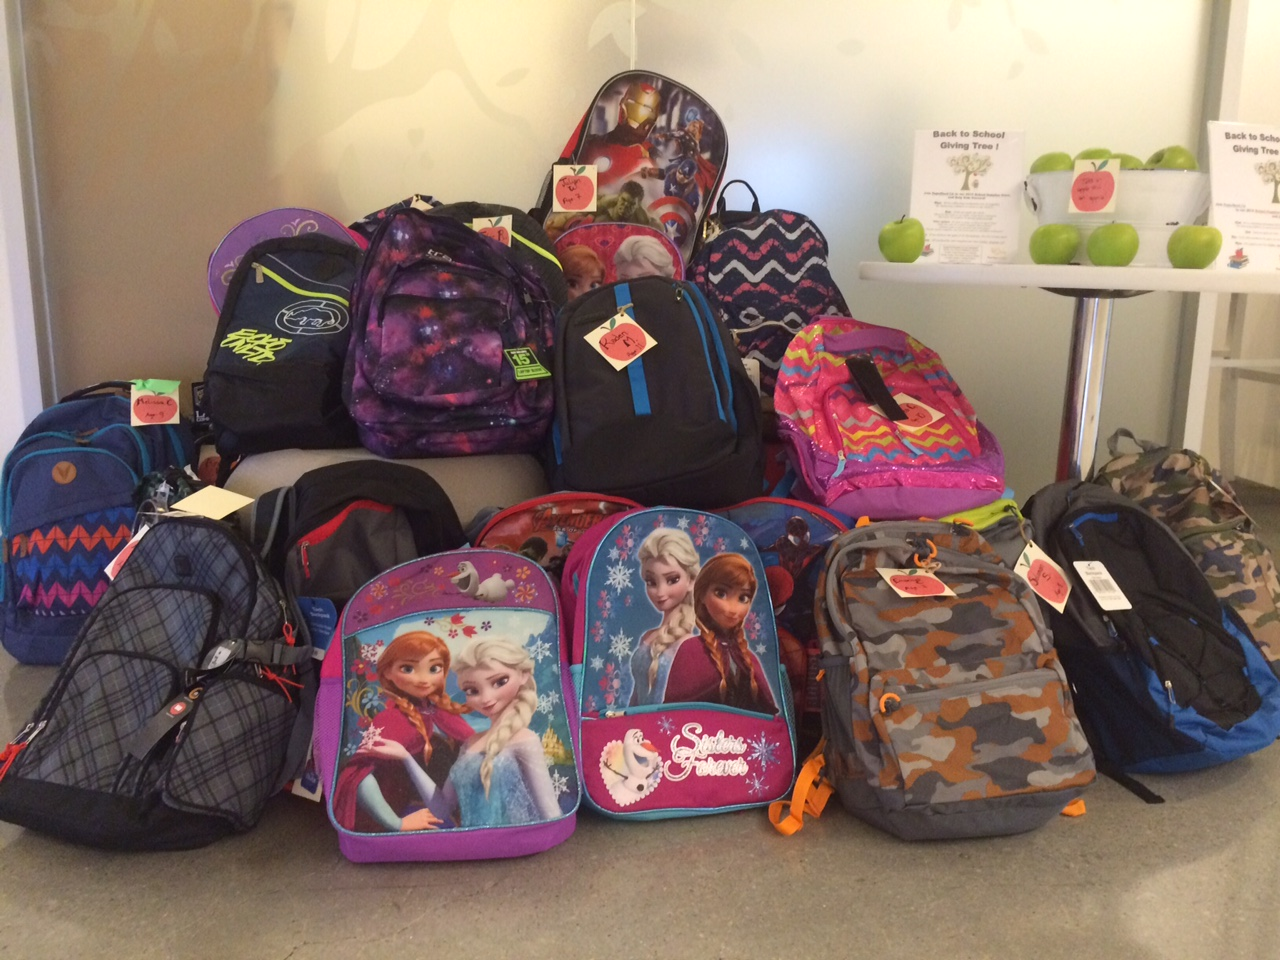 Some of the backpacks gathered for the 2015 back-to-school drive